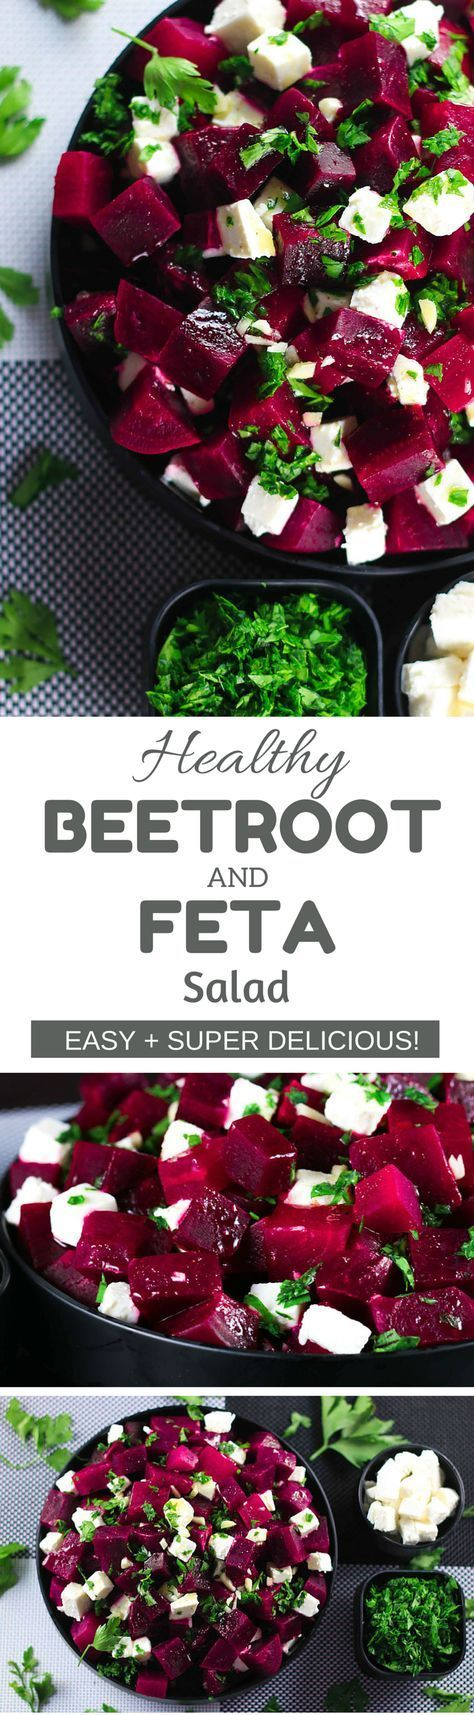 This salad has the perfect balance of sweet and salty from the beetroot and feta cheese - SO good! Super healthy and tastes even better!   http://ScrambledChefs.com